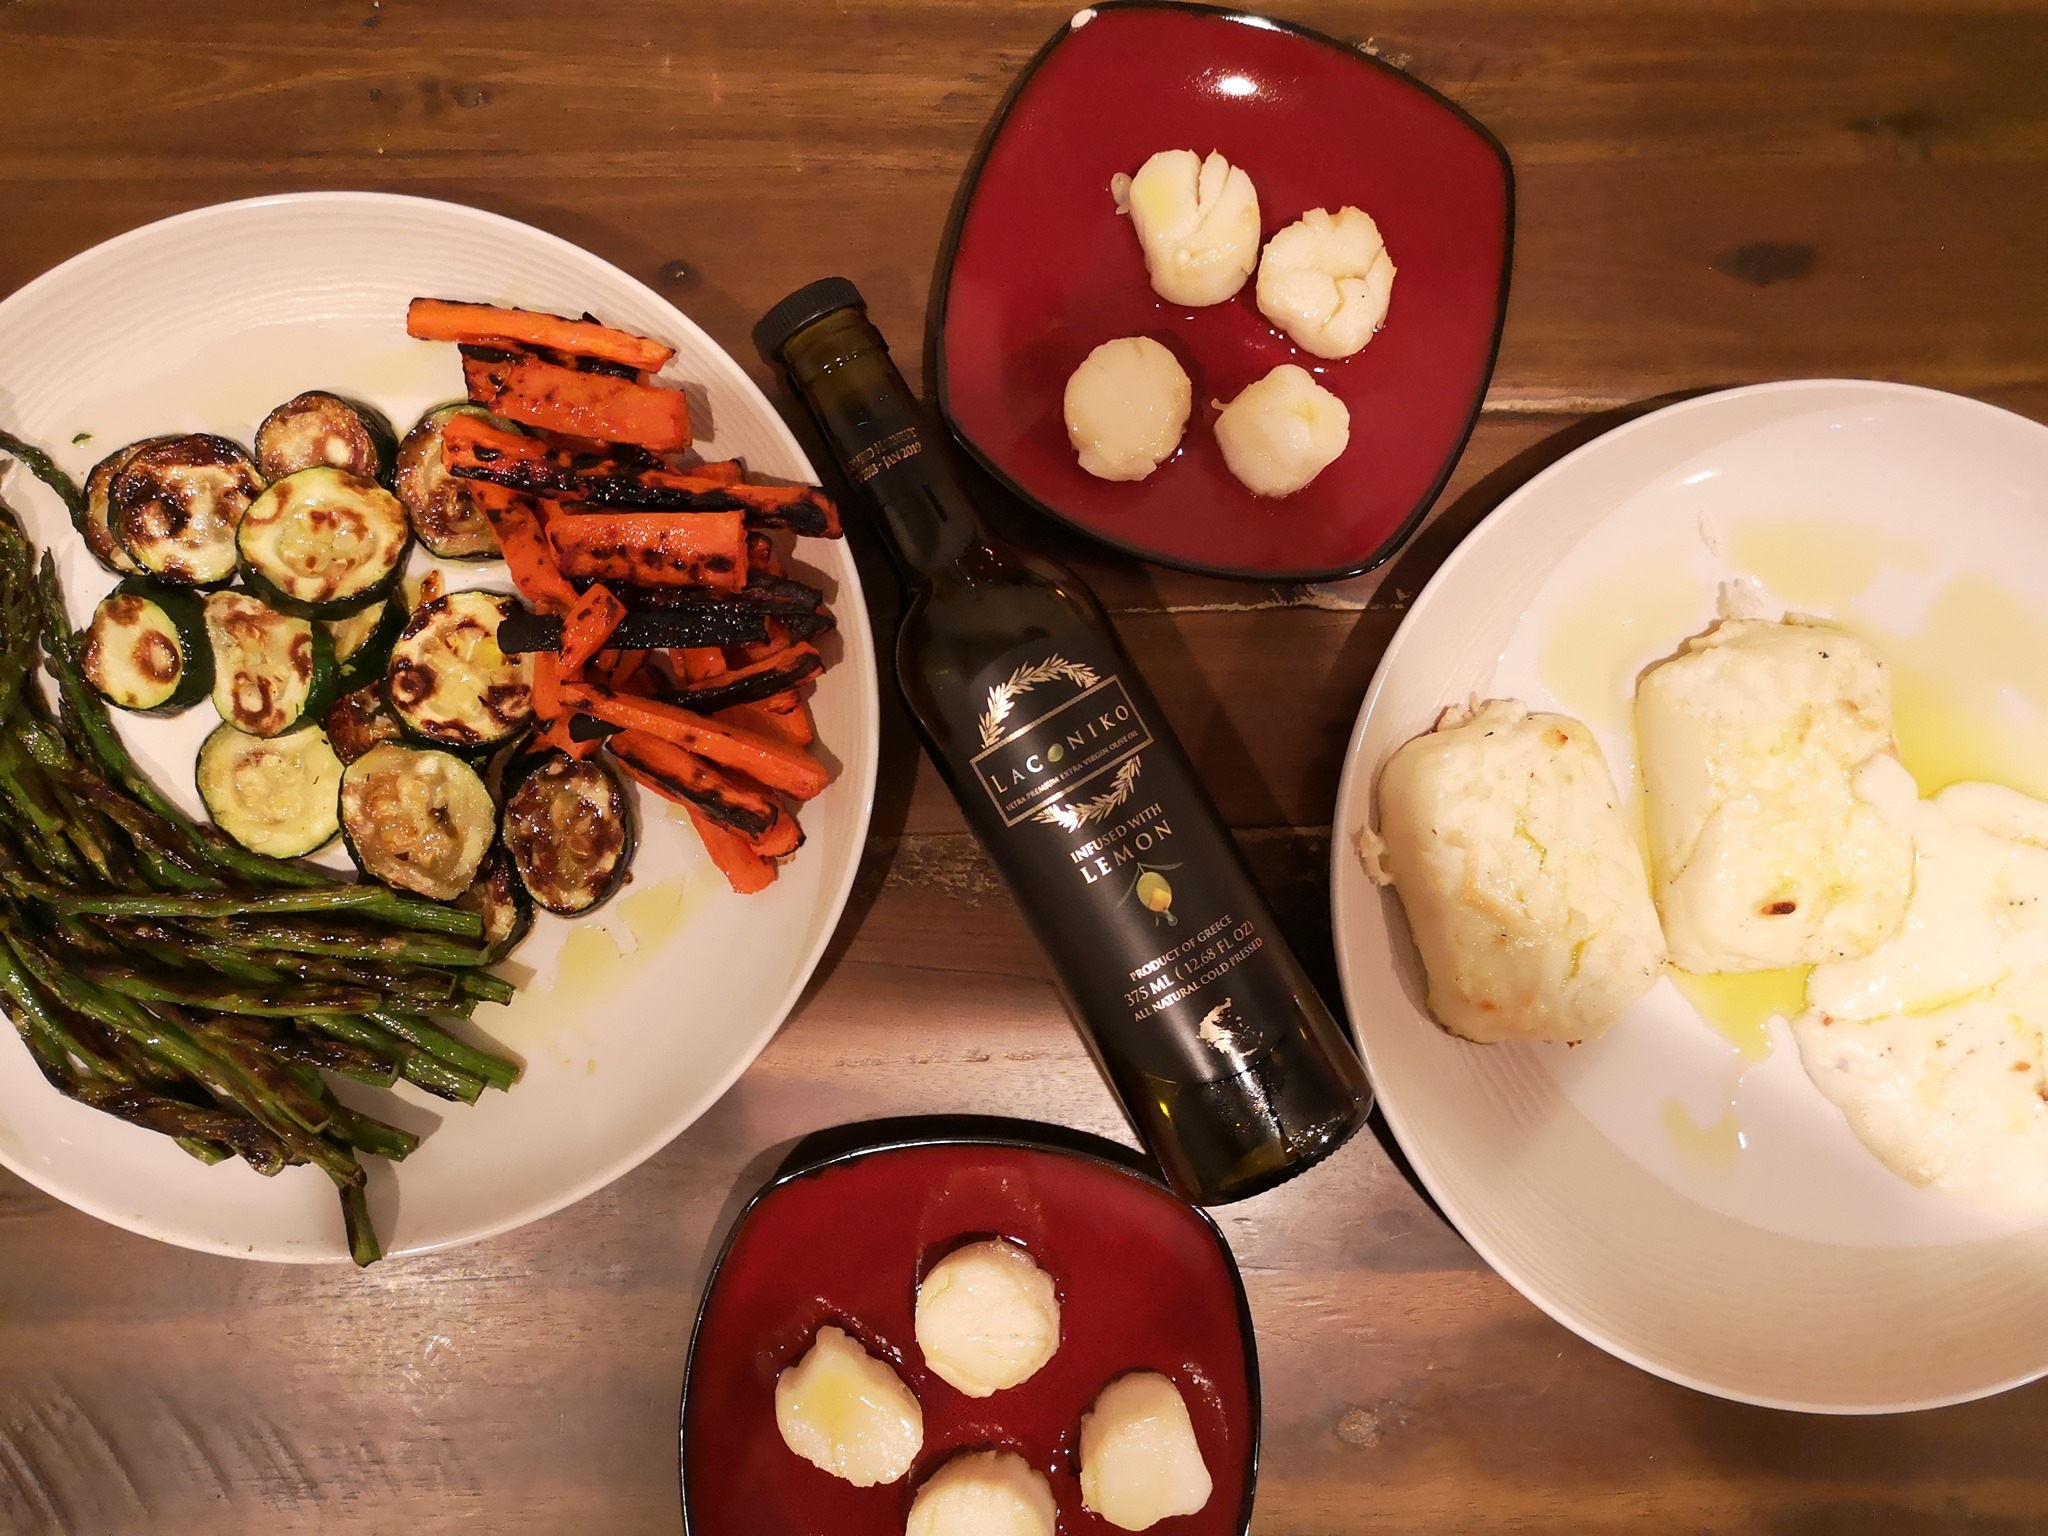 30 Minute Cooking With Laconiko - Grilled Cypriot Halloumi & Vegetables With Pan Seared Scallops